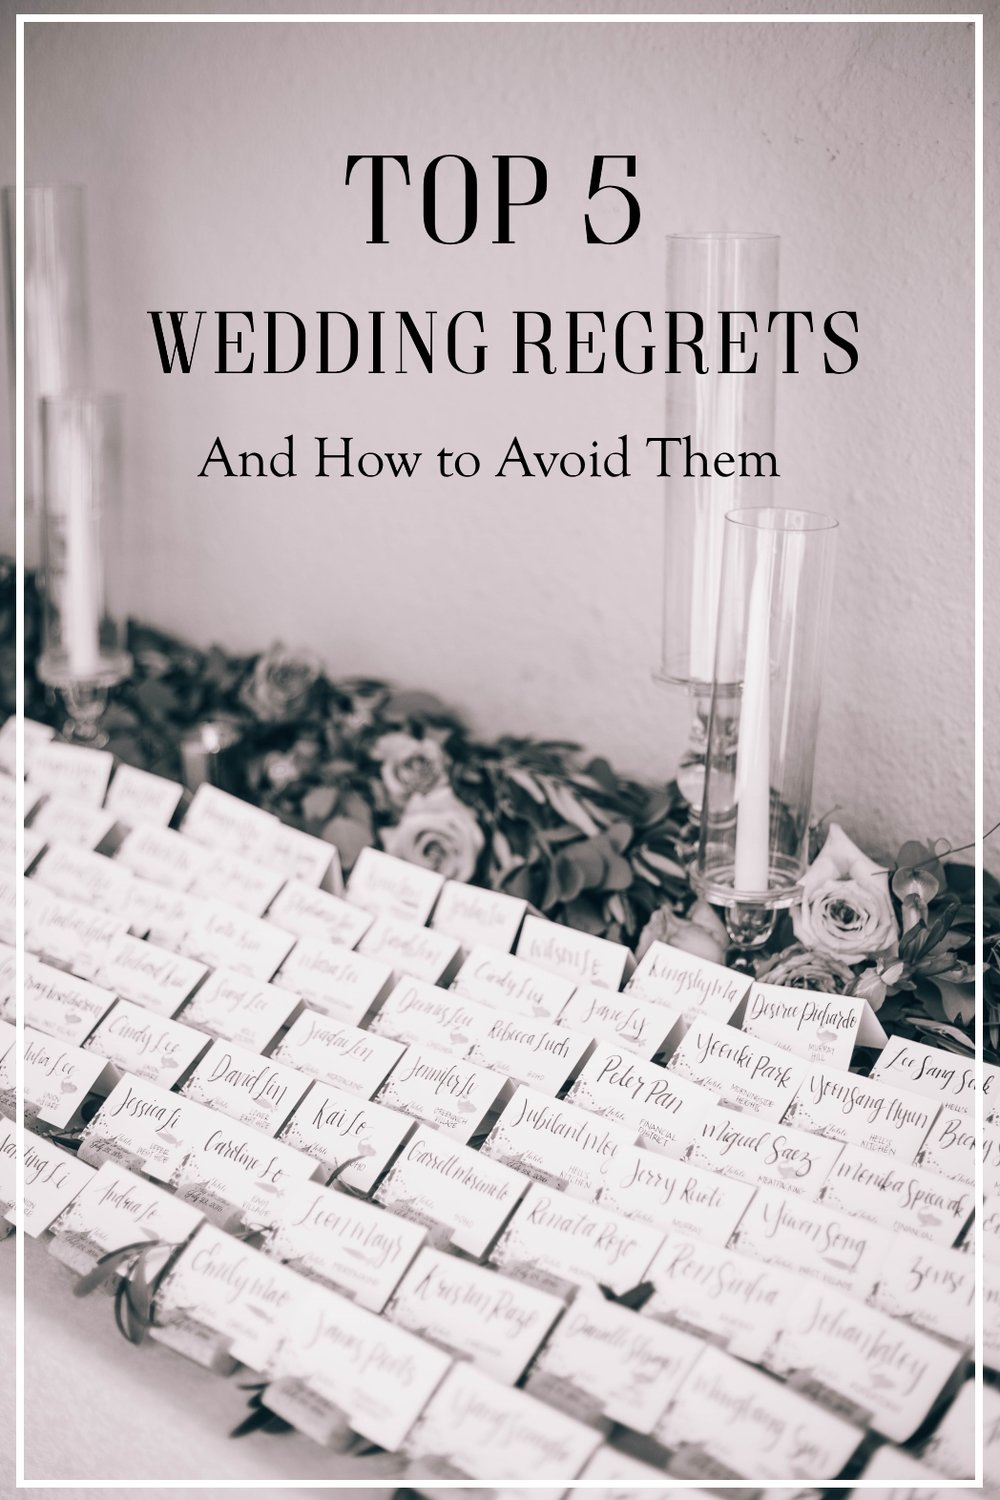 Top 5 Wedding Regrets and How to Avoid Them